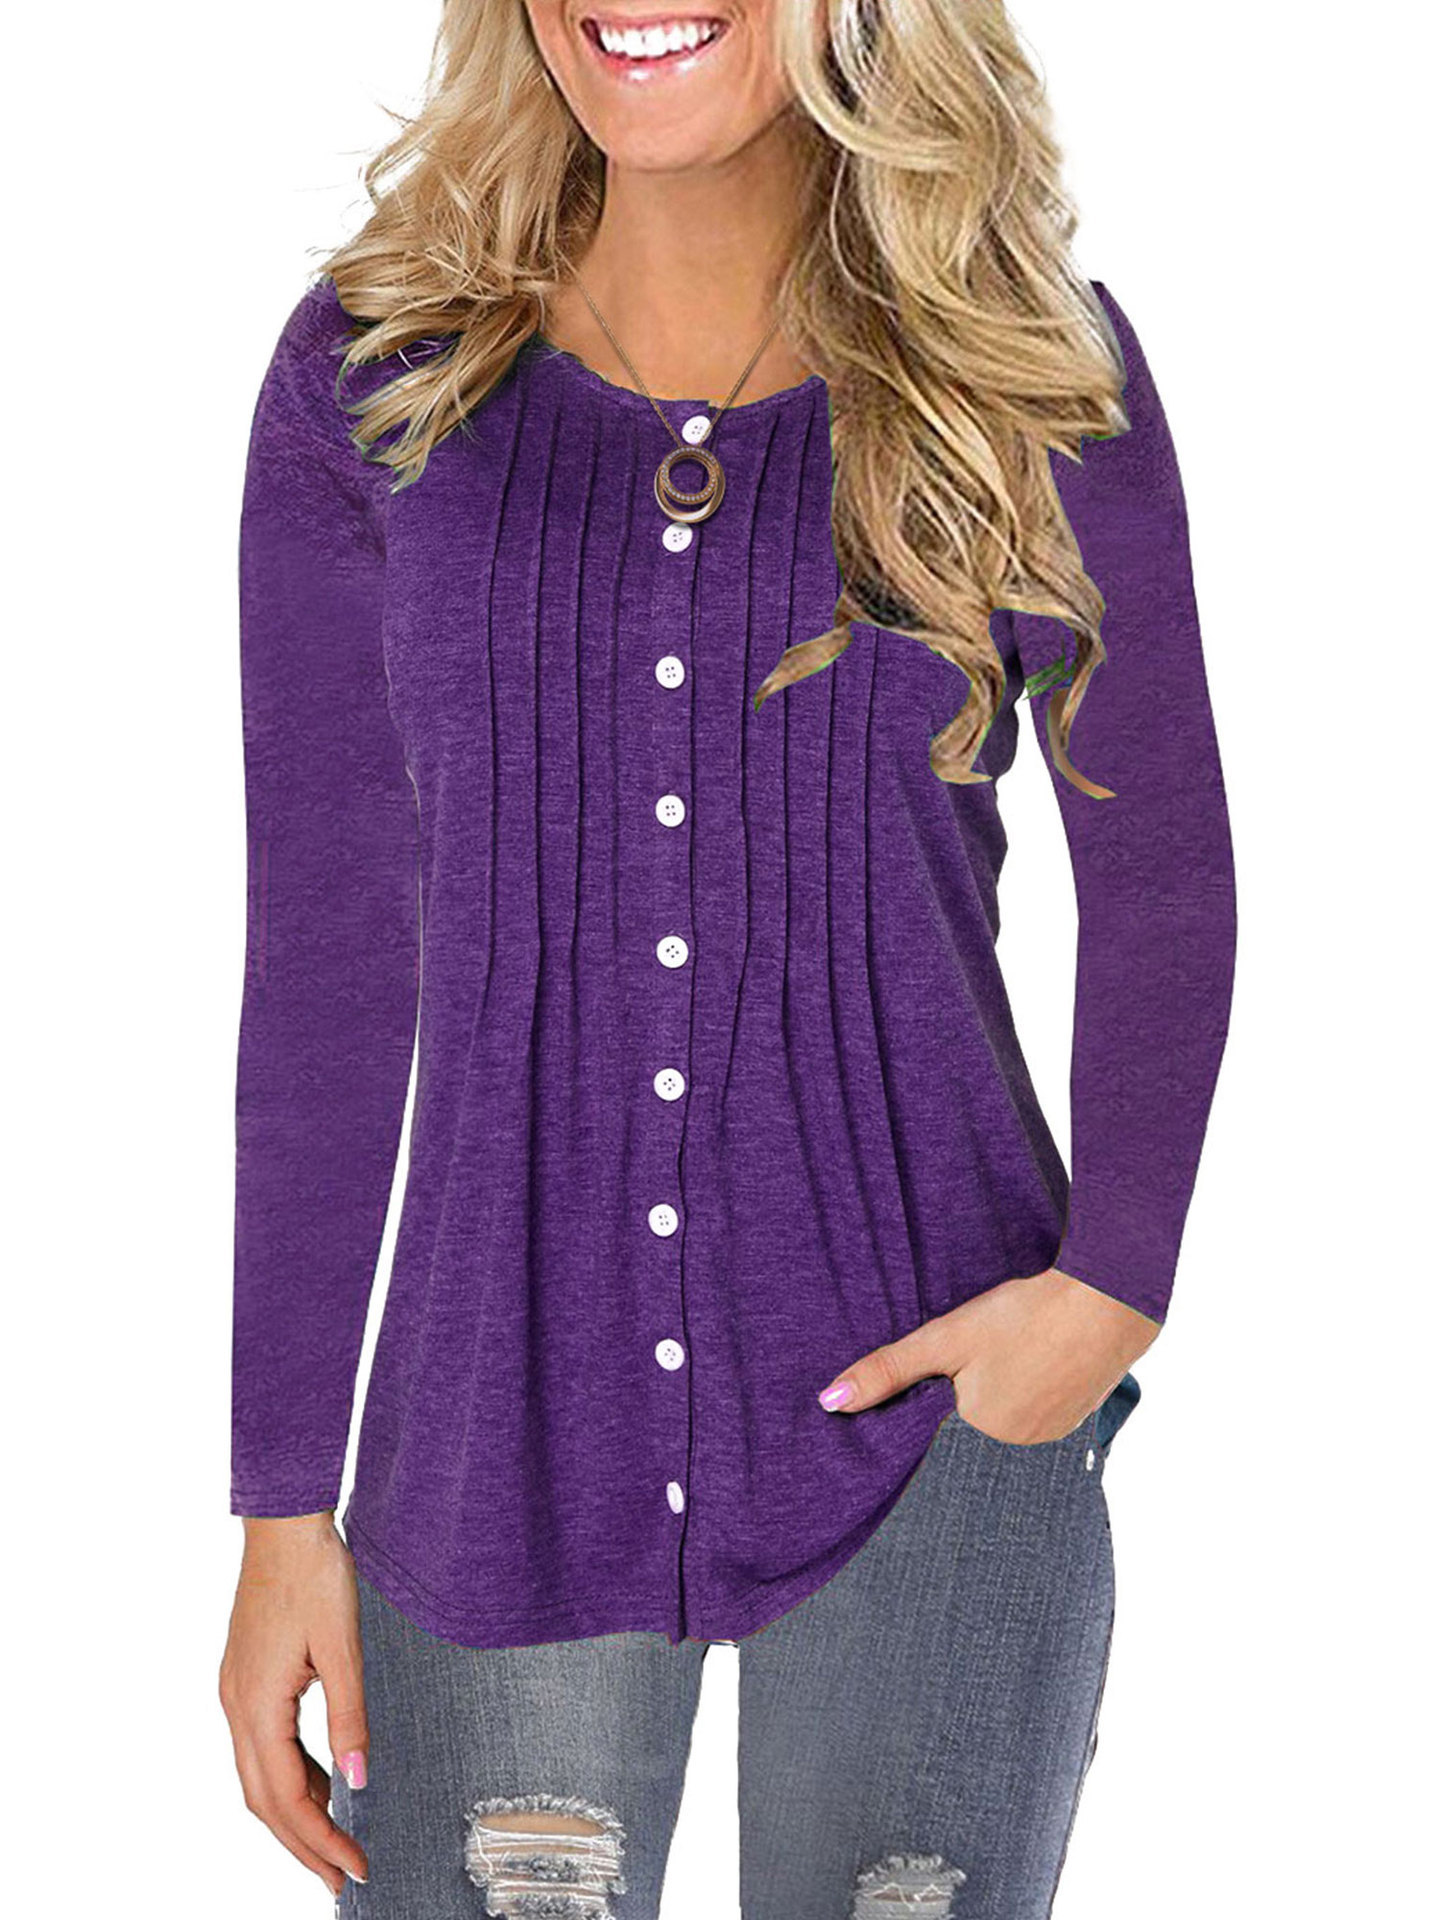 Ladies new pleated button top